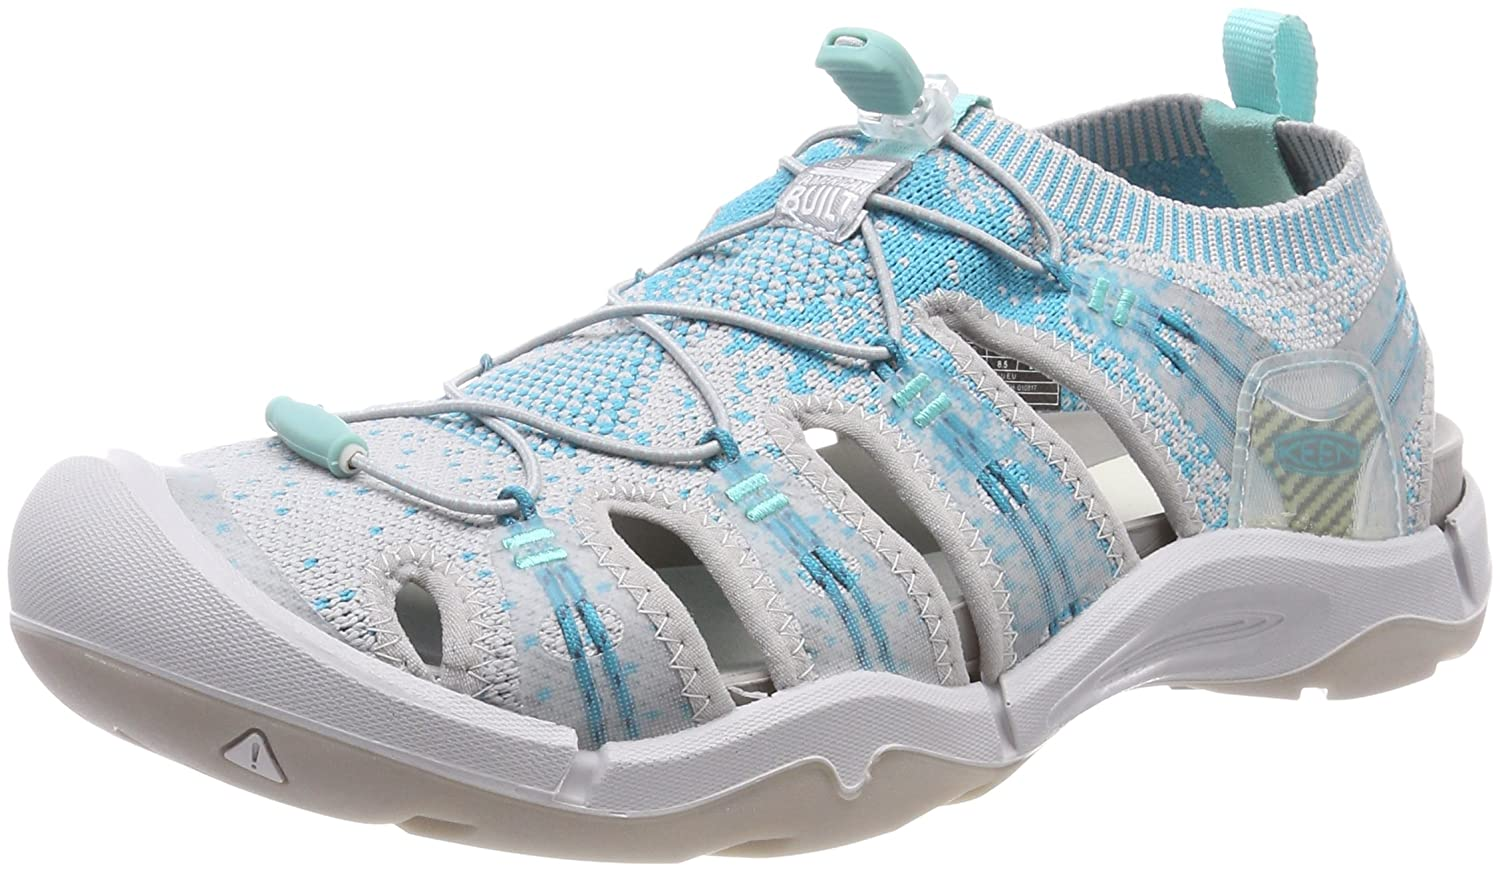 KEEN Women's EVOFIT ONE Water Sandal for Outdoor Adventures B06ZZMTX96 6 M US|Paloma/Lake Blue